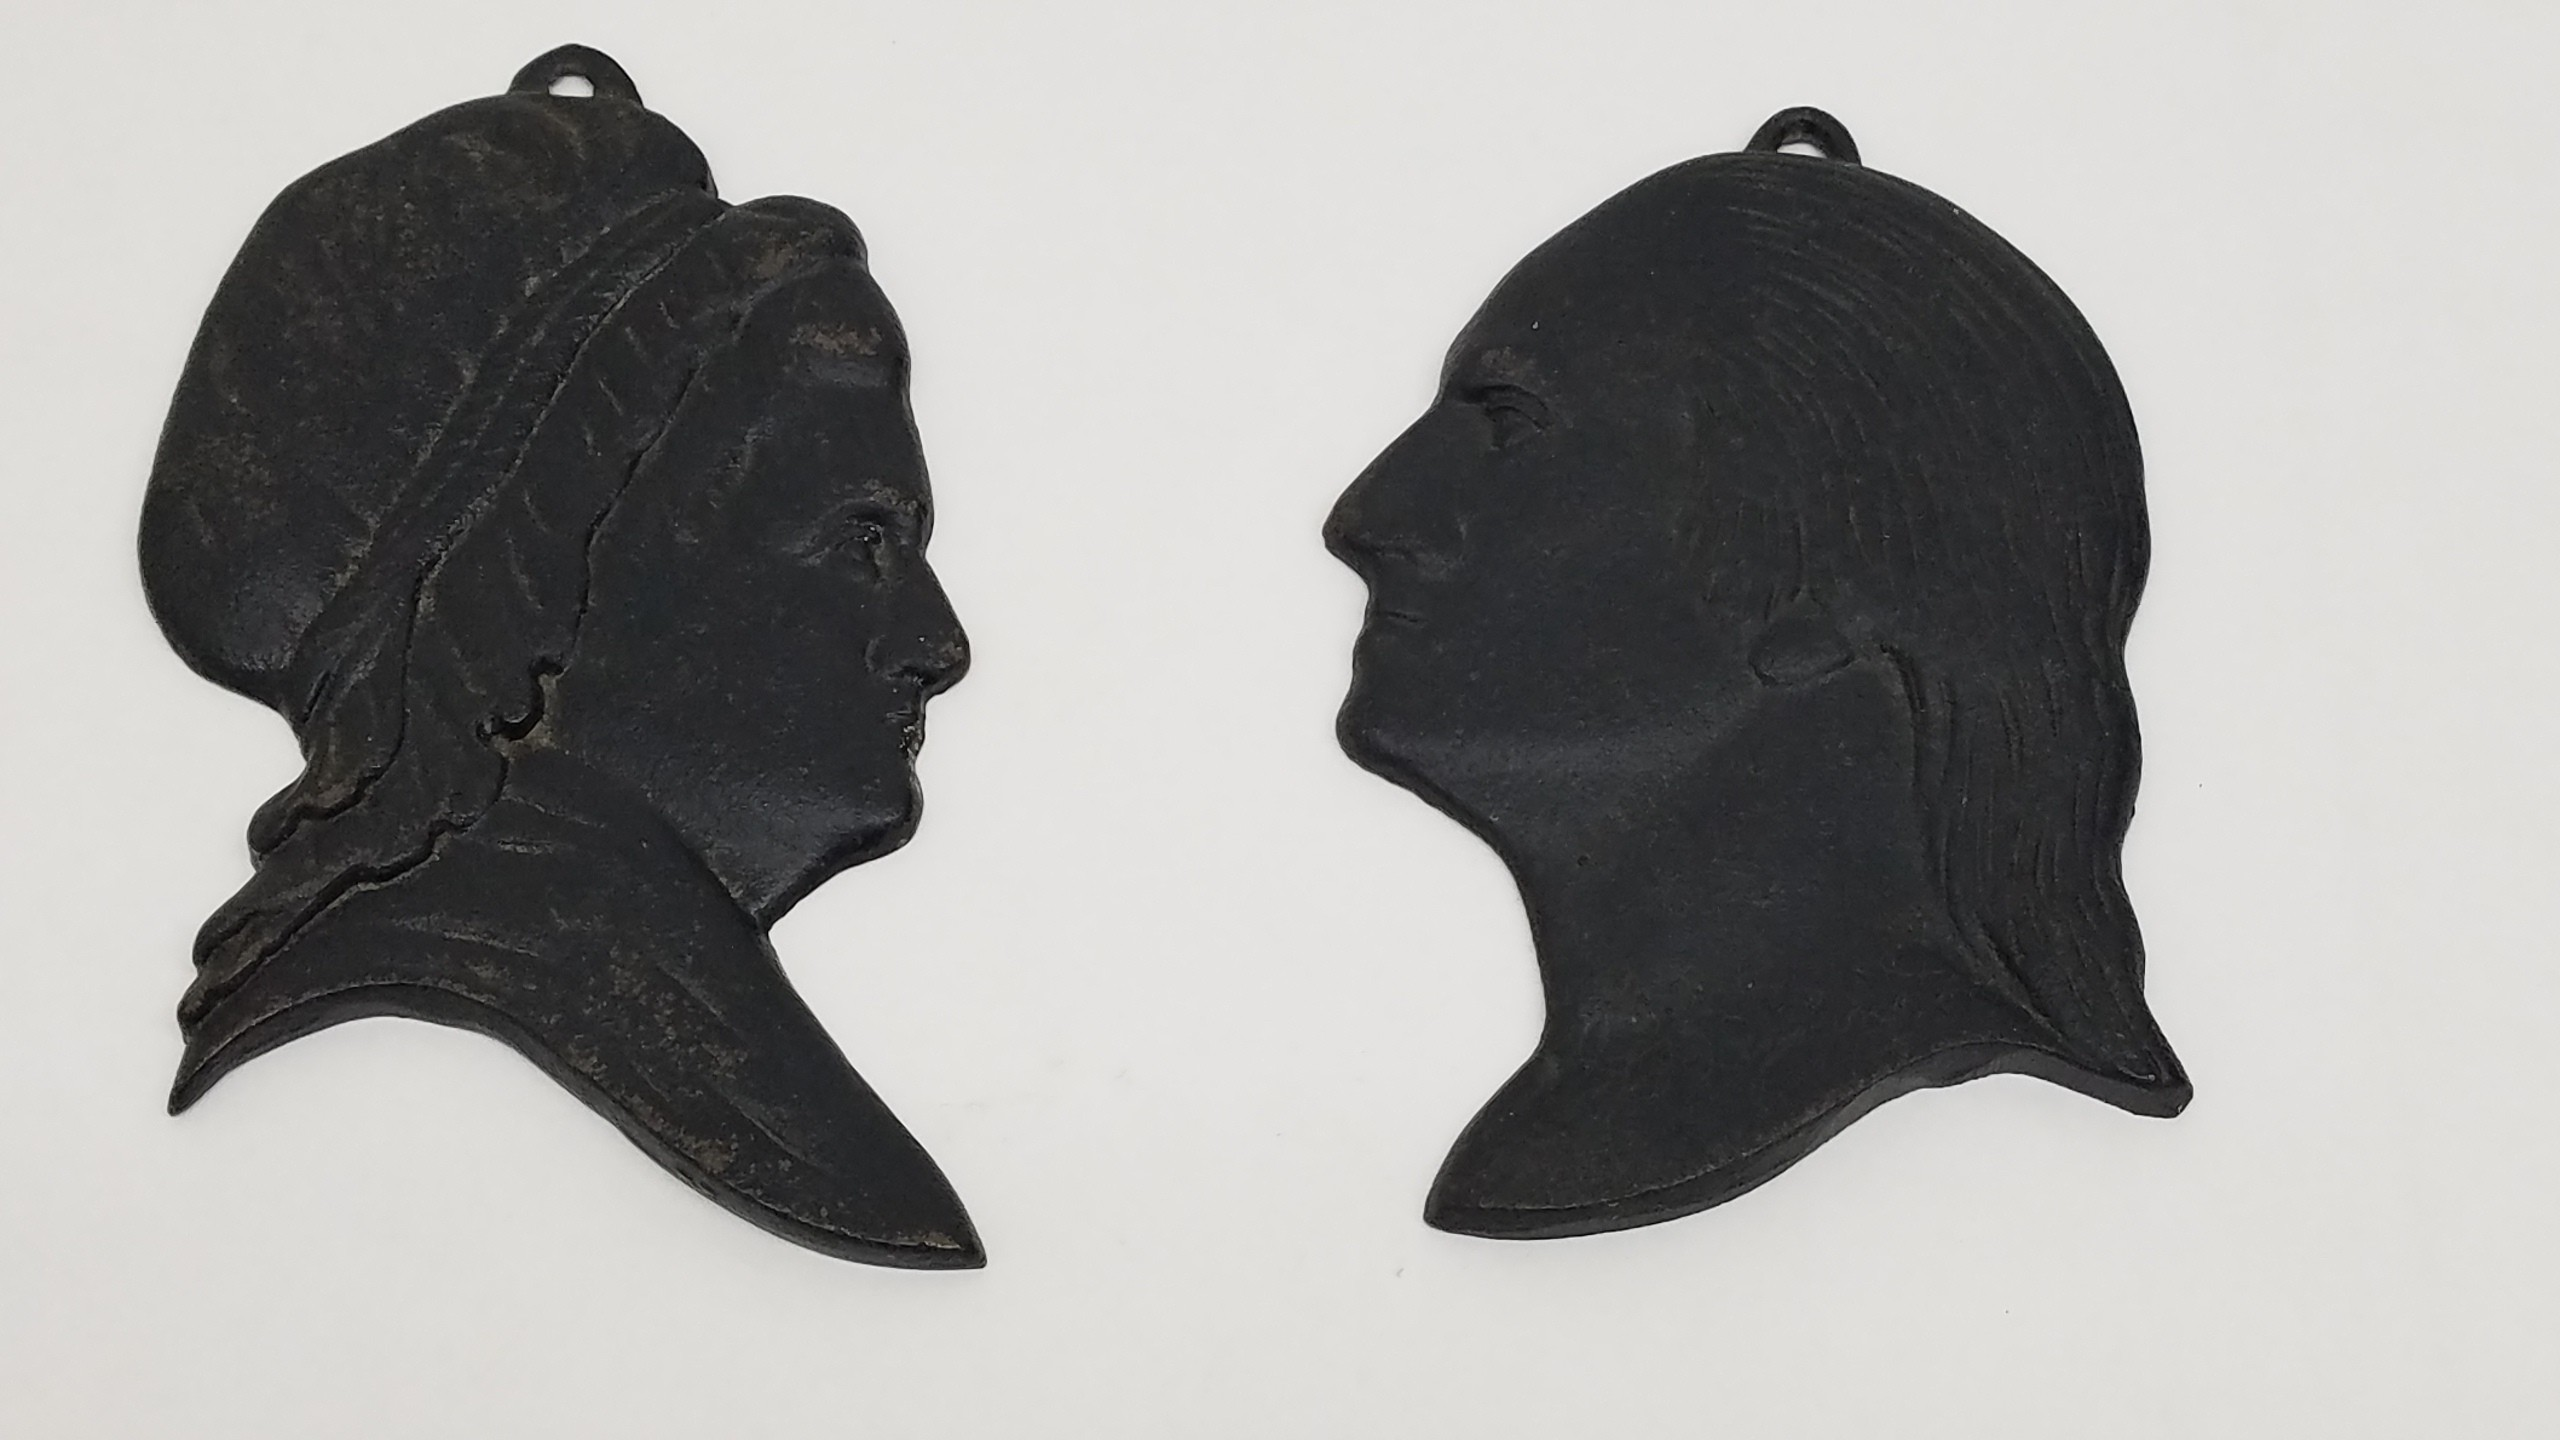 Virginia Metalcrafters Cast Iron George and Martha Washington Silhouettes